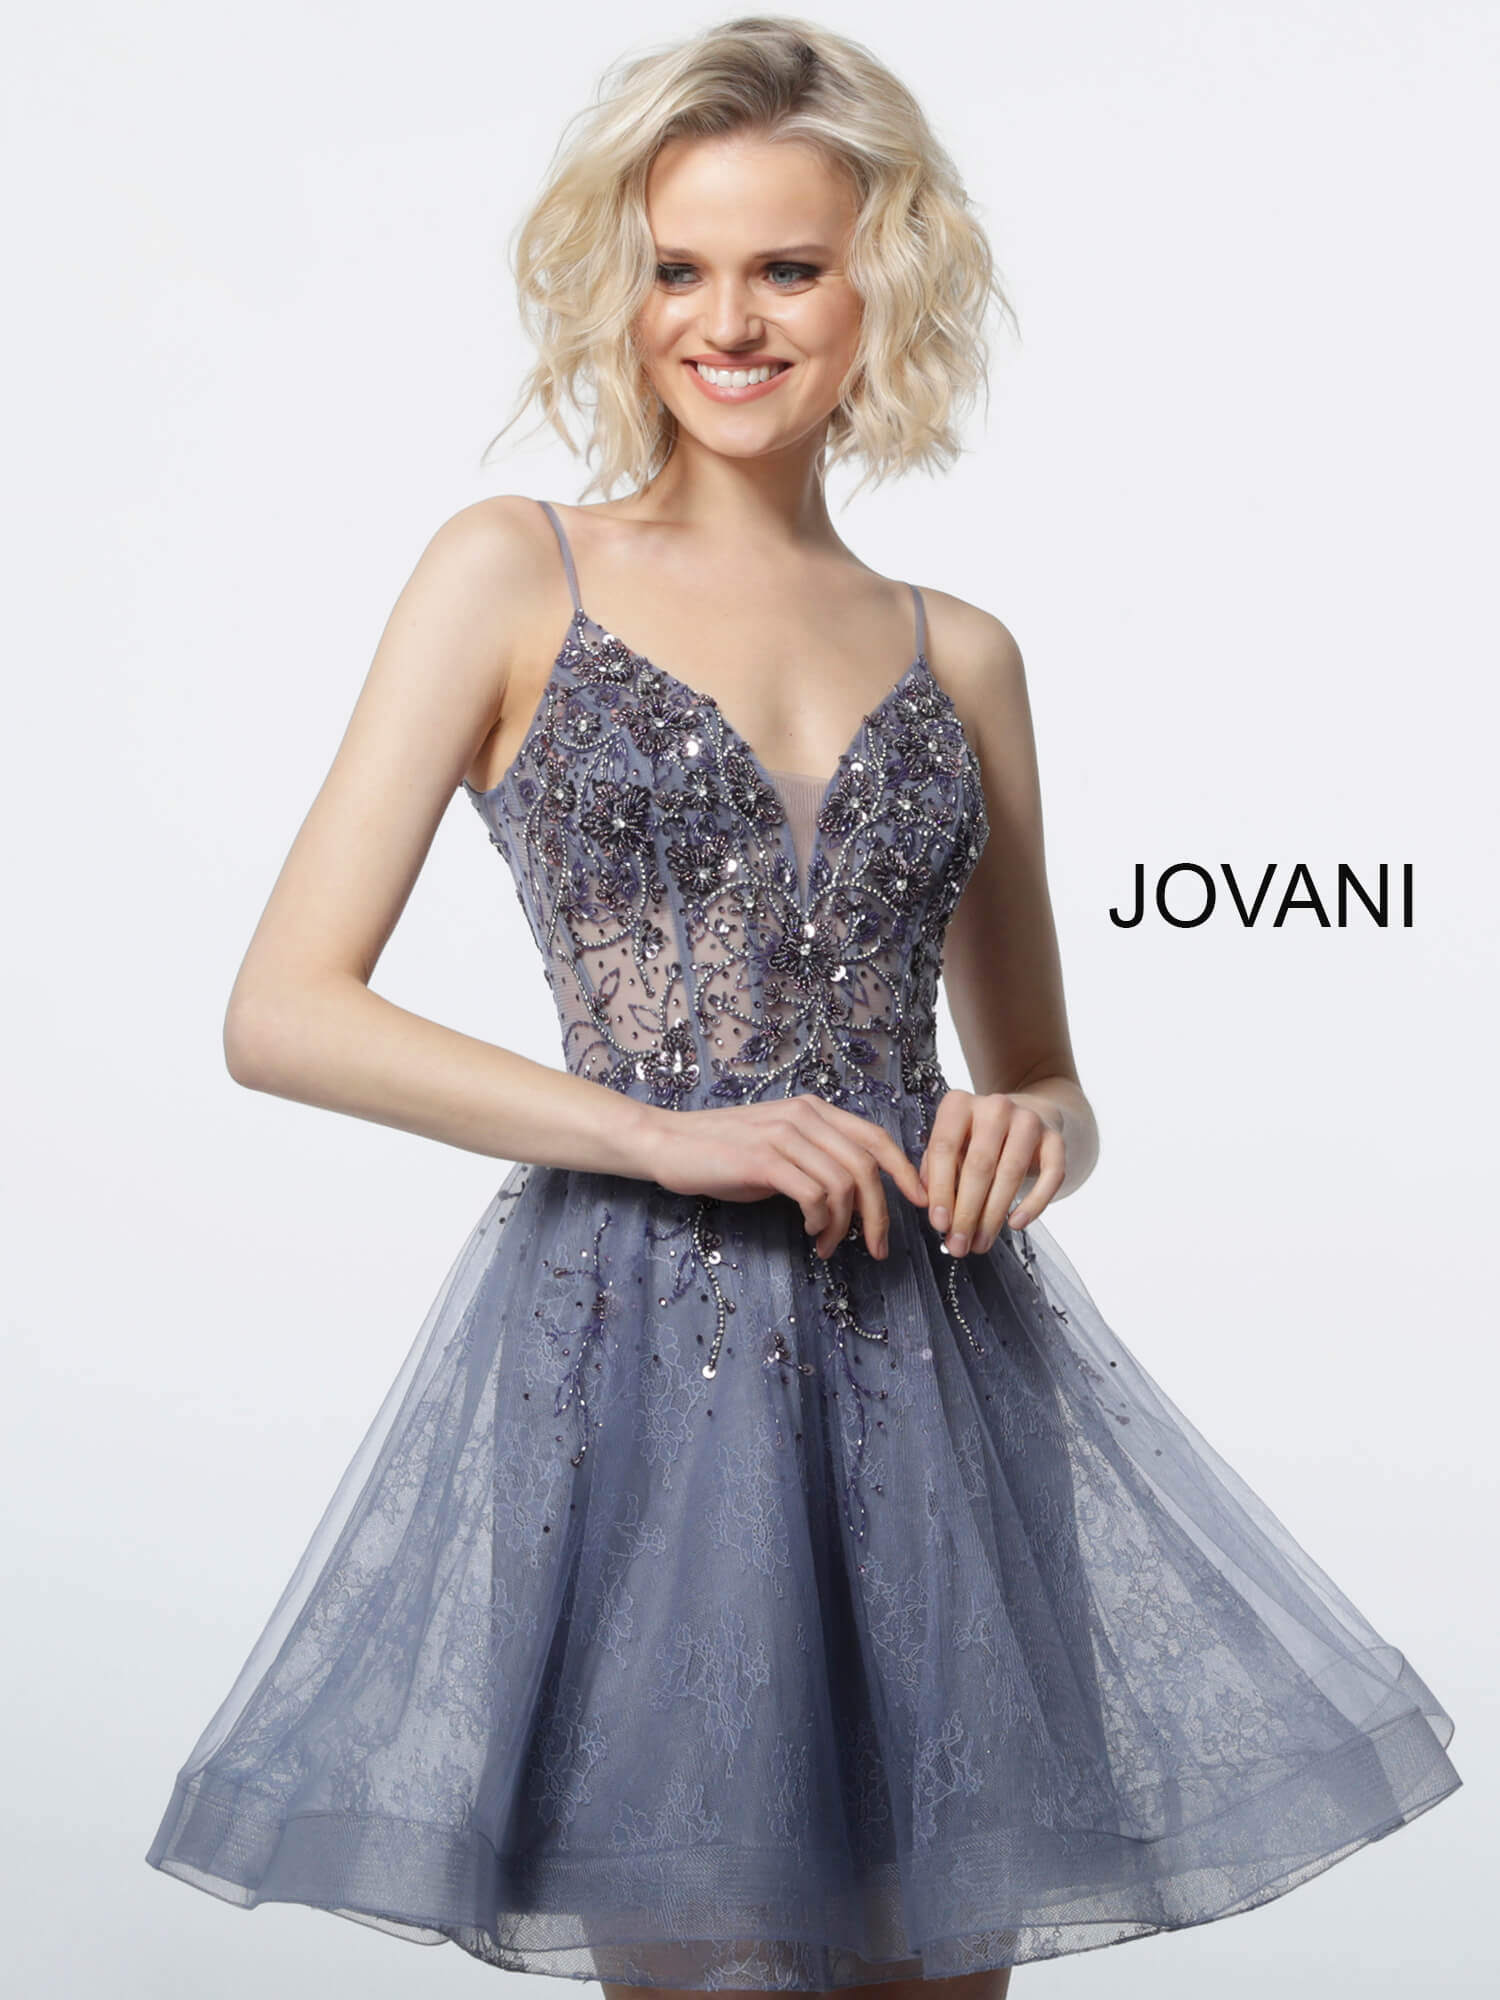 jovani Grey Purple Fit and Flare Embellished Cocktail Dress 2527